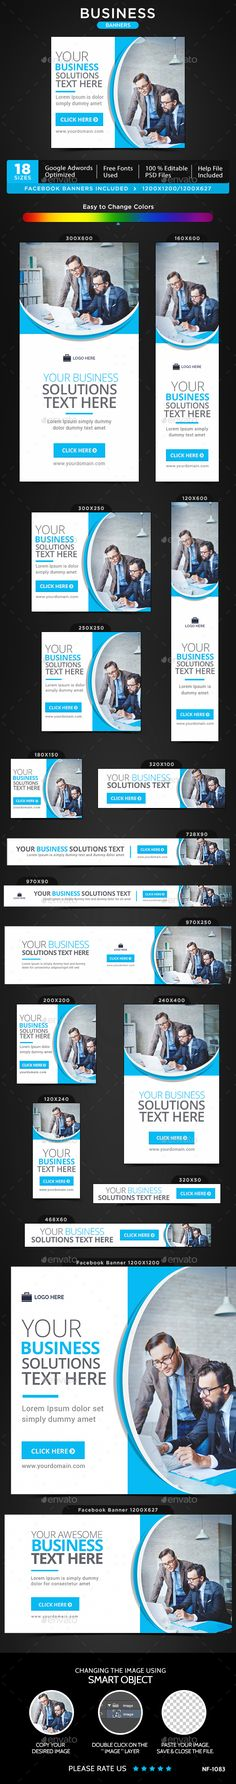 Business Banners — Photoshop PSD #Google adwords banner #social media • Available here → https://graphicriver.net/item/business-banners/15009631?ref=pxcr